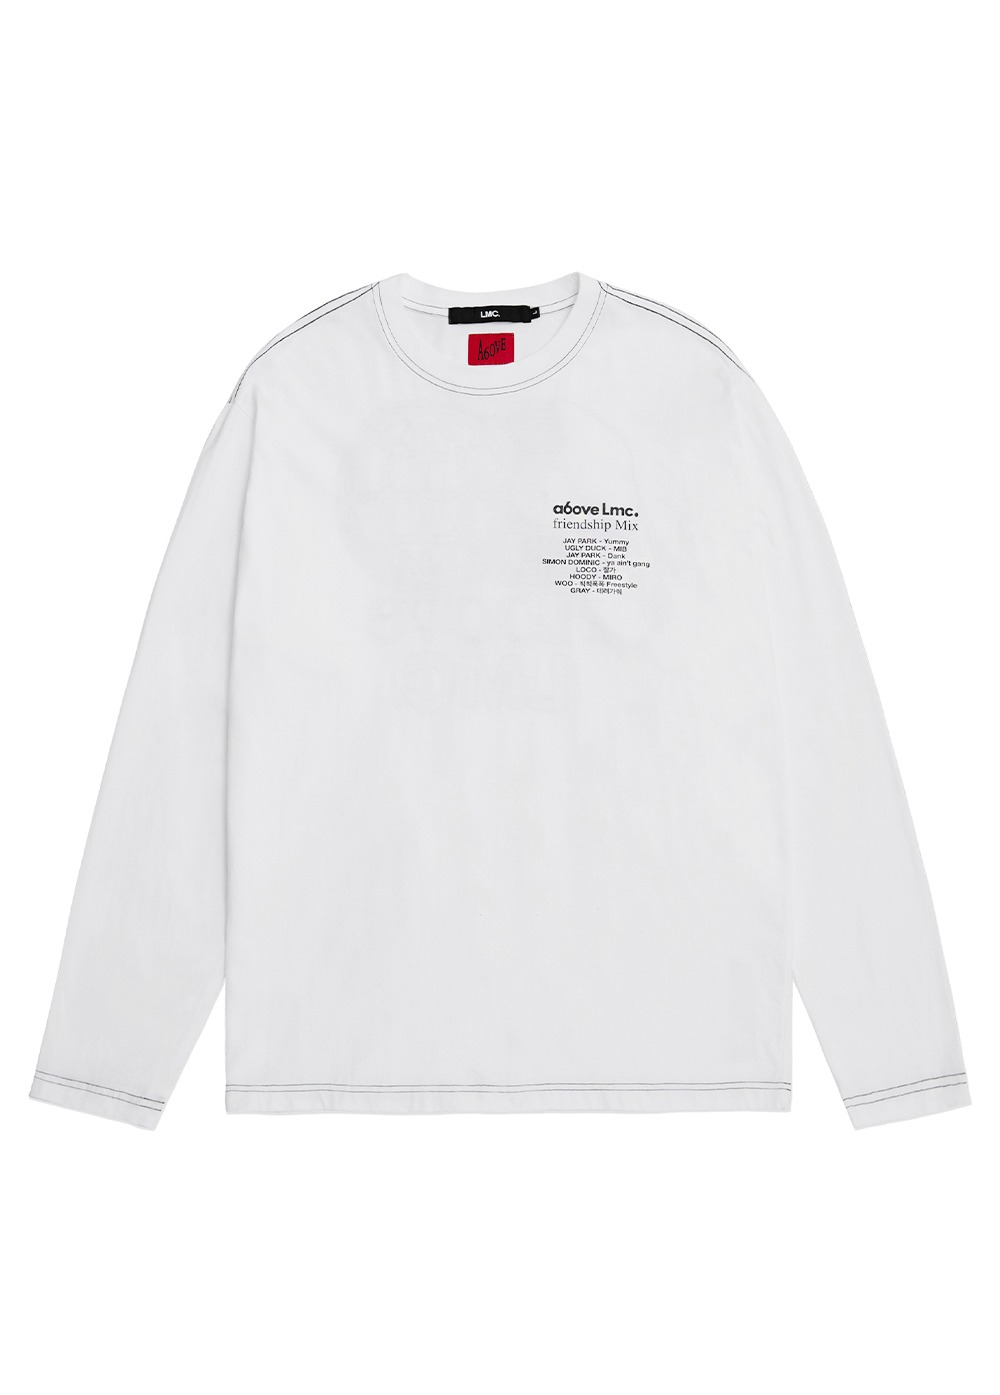 LMC X A6OVE FRIENDSHIP MIX LONG SLV TEE white